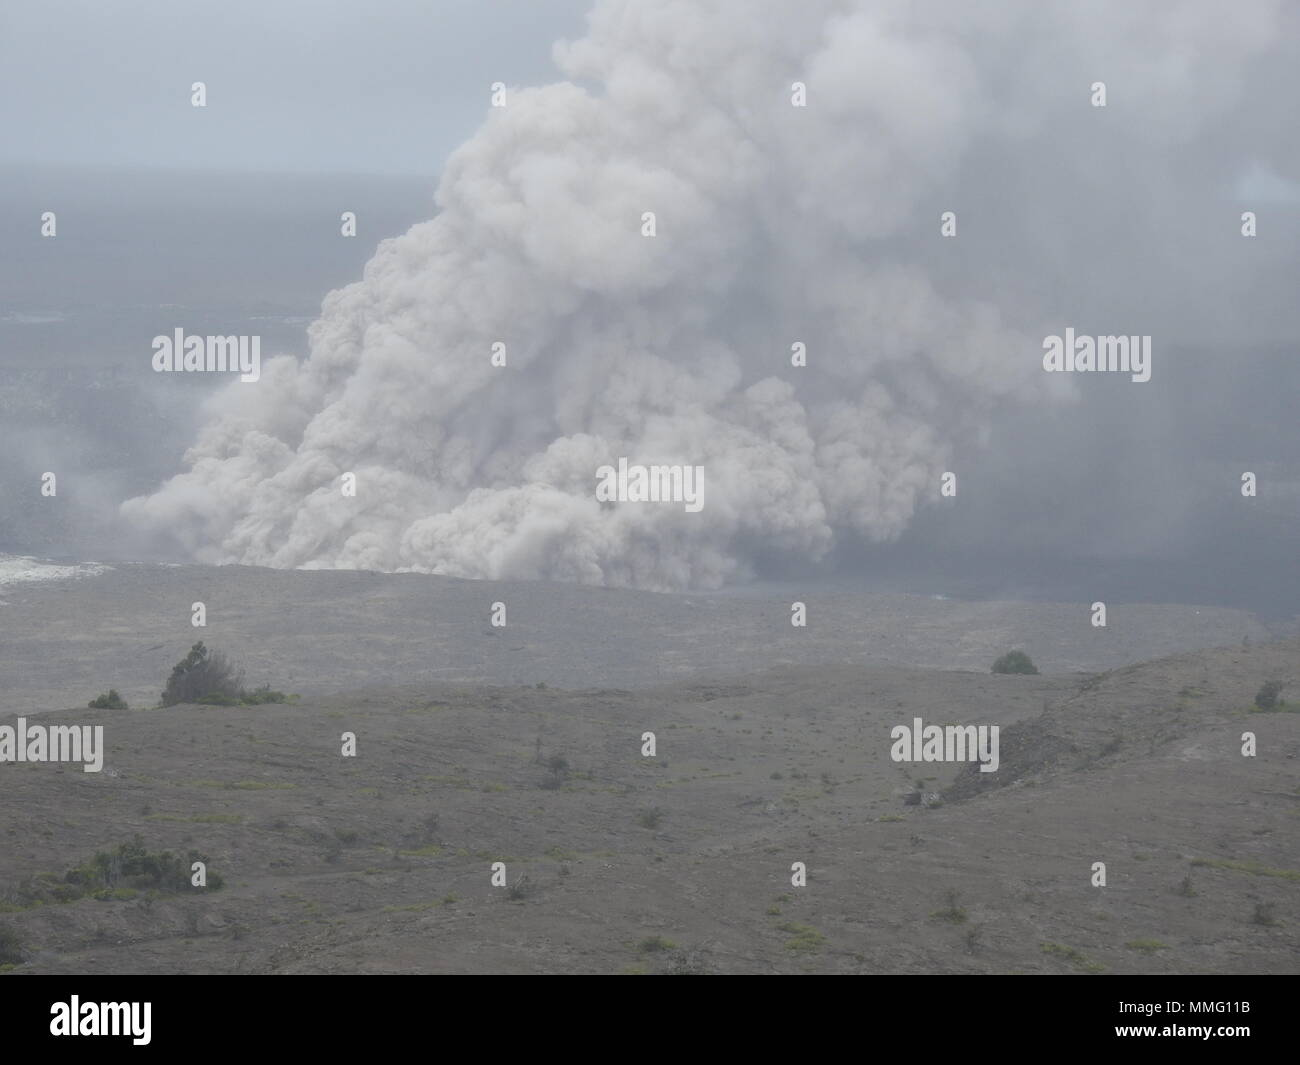 Ash Plume from Kilauea Volcano Hawaii today (05/15/2018 HST) or 05/16/2018 Stock Photo